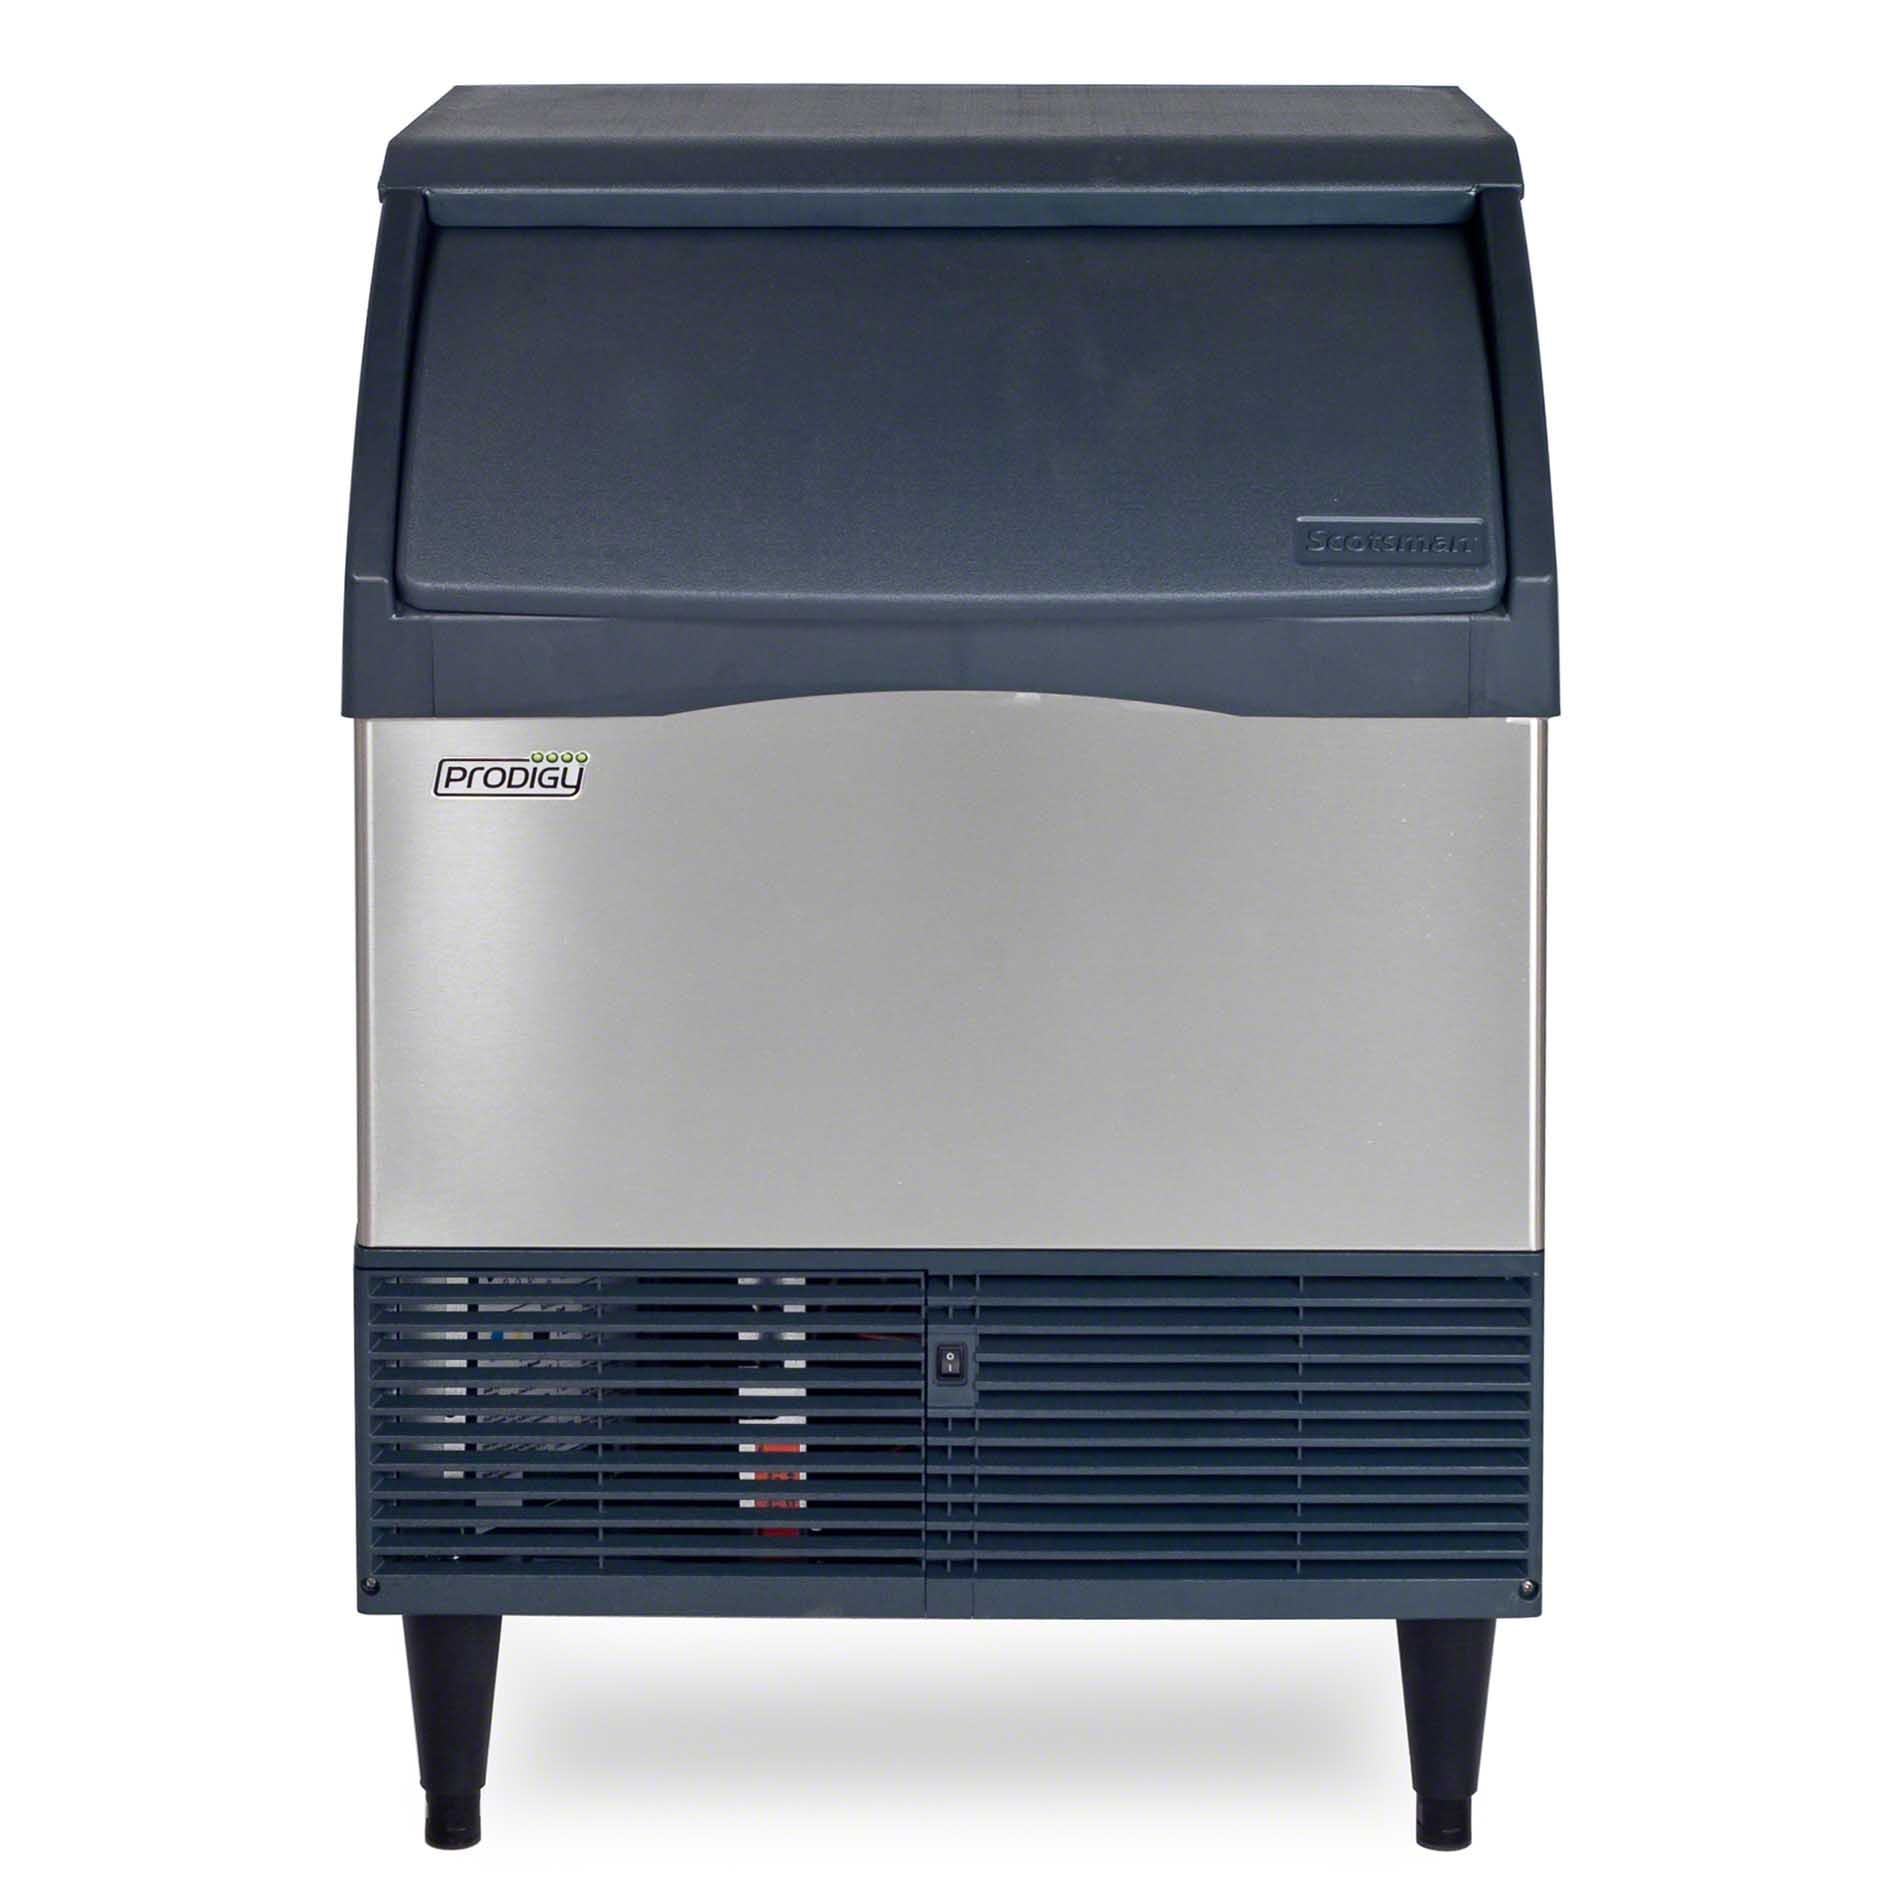 Scotsman - CU1526MW-1A 175 lb Self-Contained Cube Ice Machine - Prodigy Series - sold by Food Service Warehouse